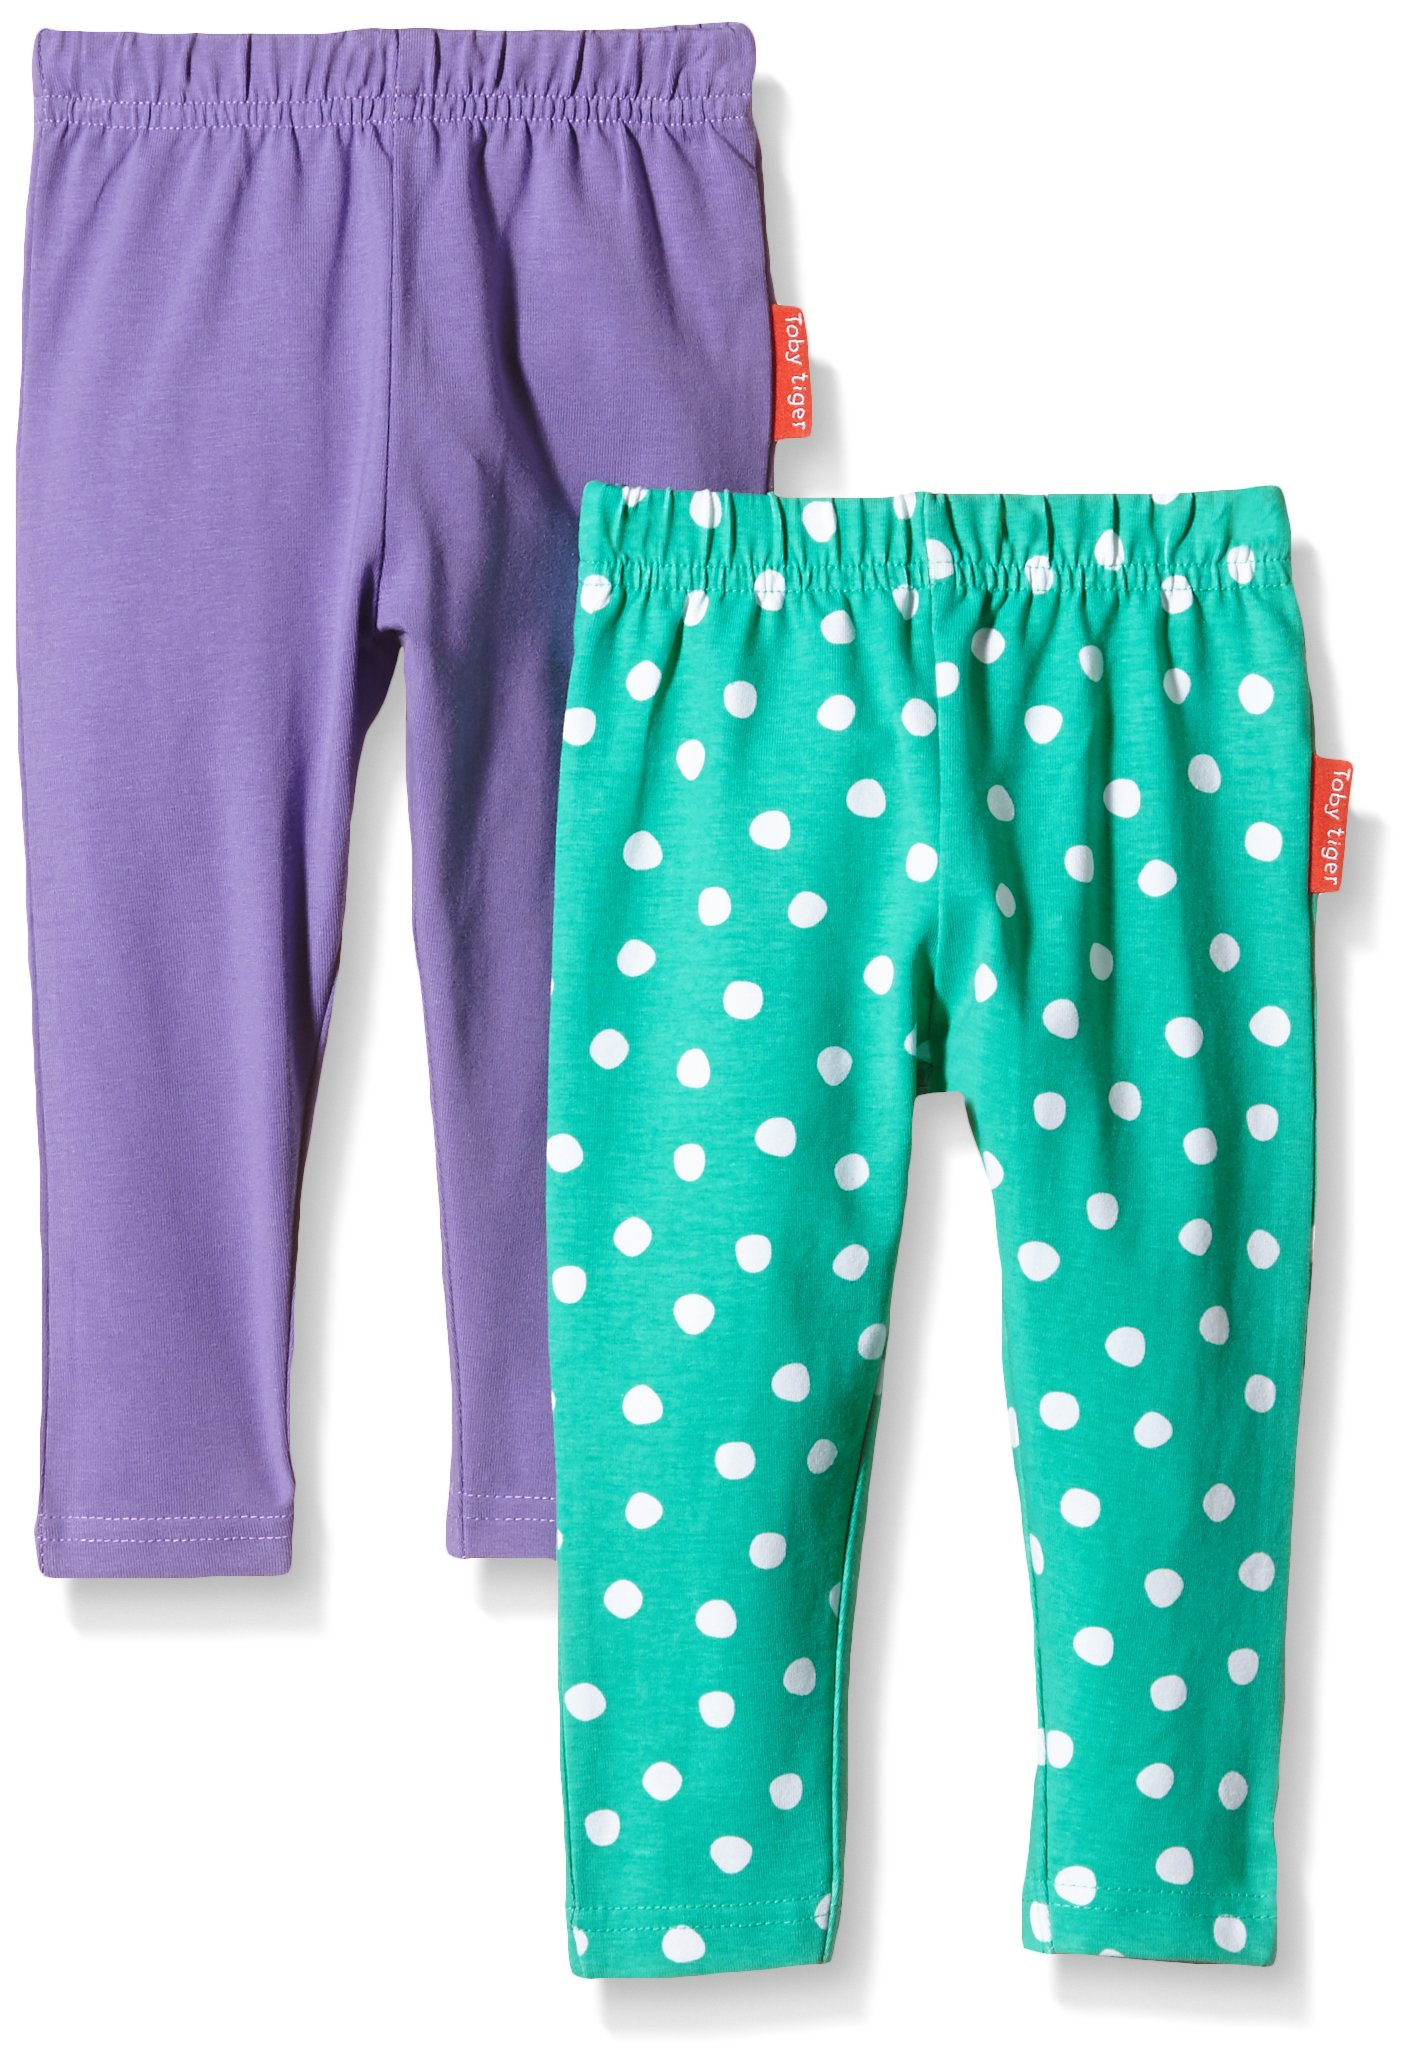 Toby Tiger Green and Purple Leggings 2 Pack (2-3 Years)